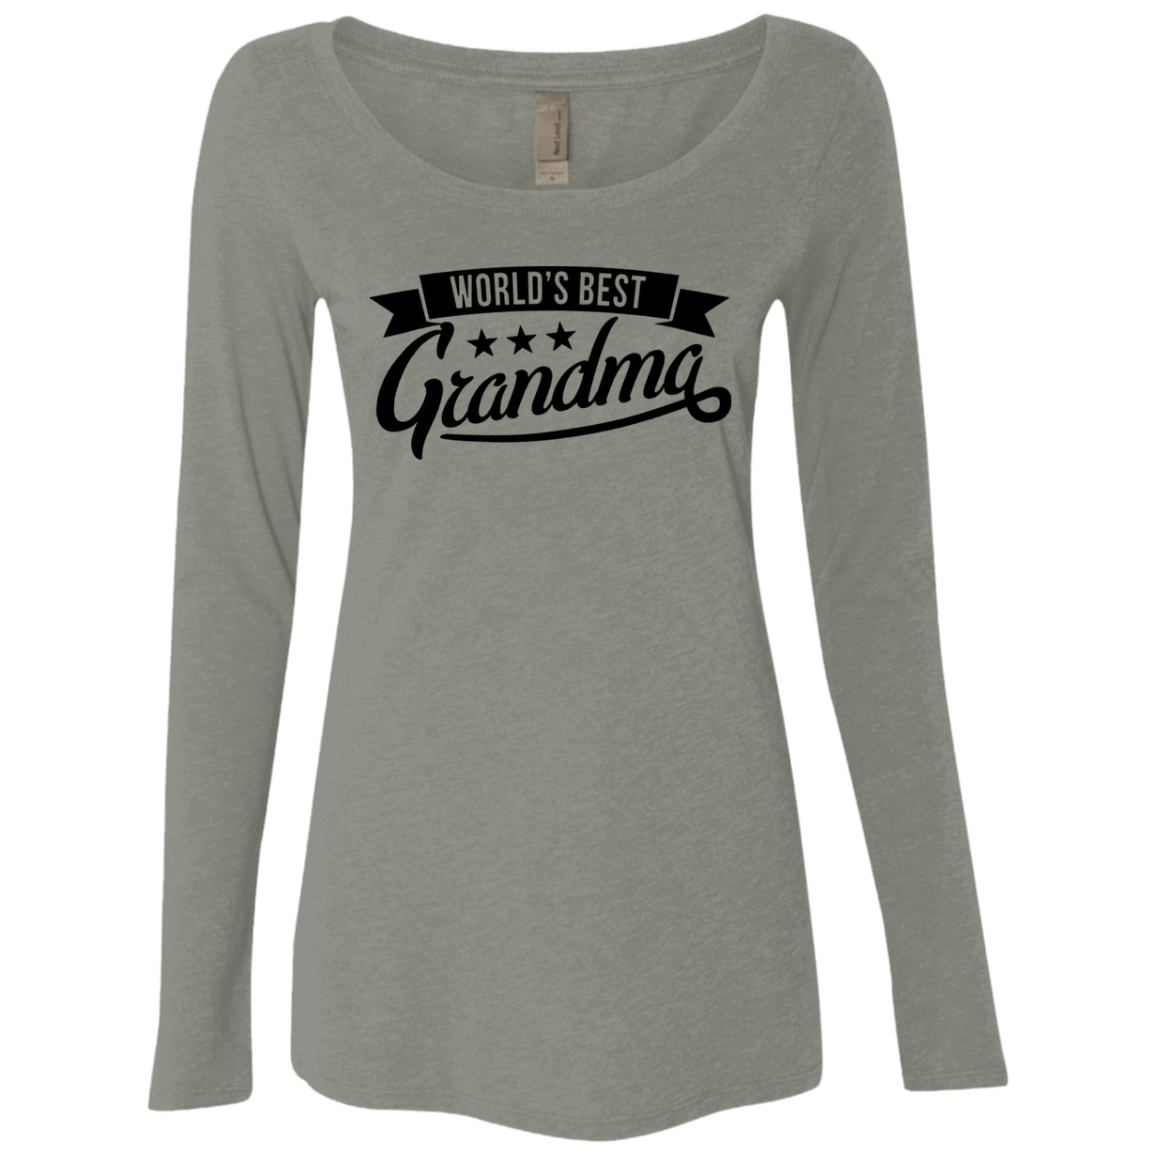 World's Best Grandma Women's Long Sleeve Tee